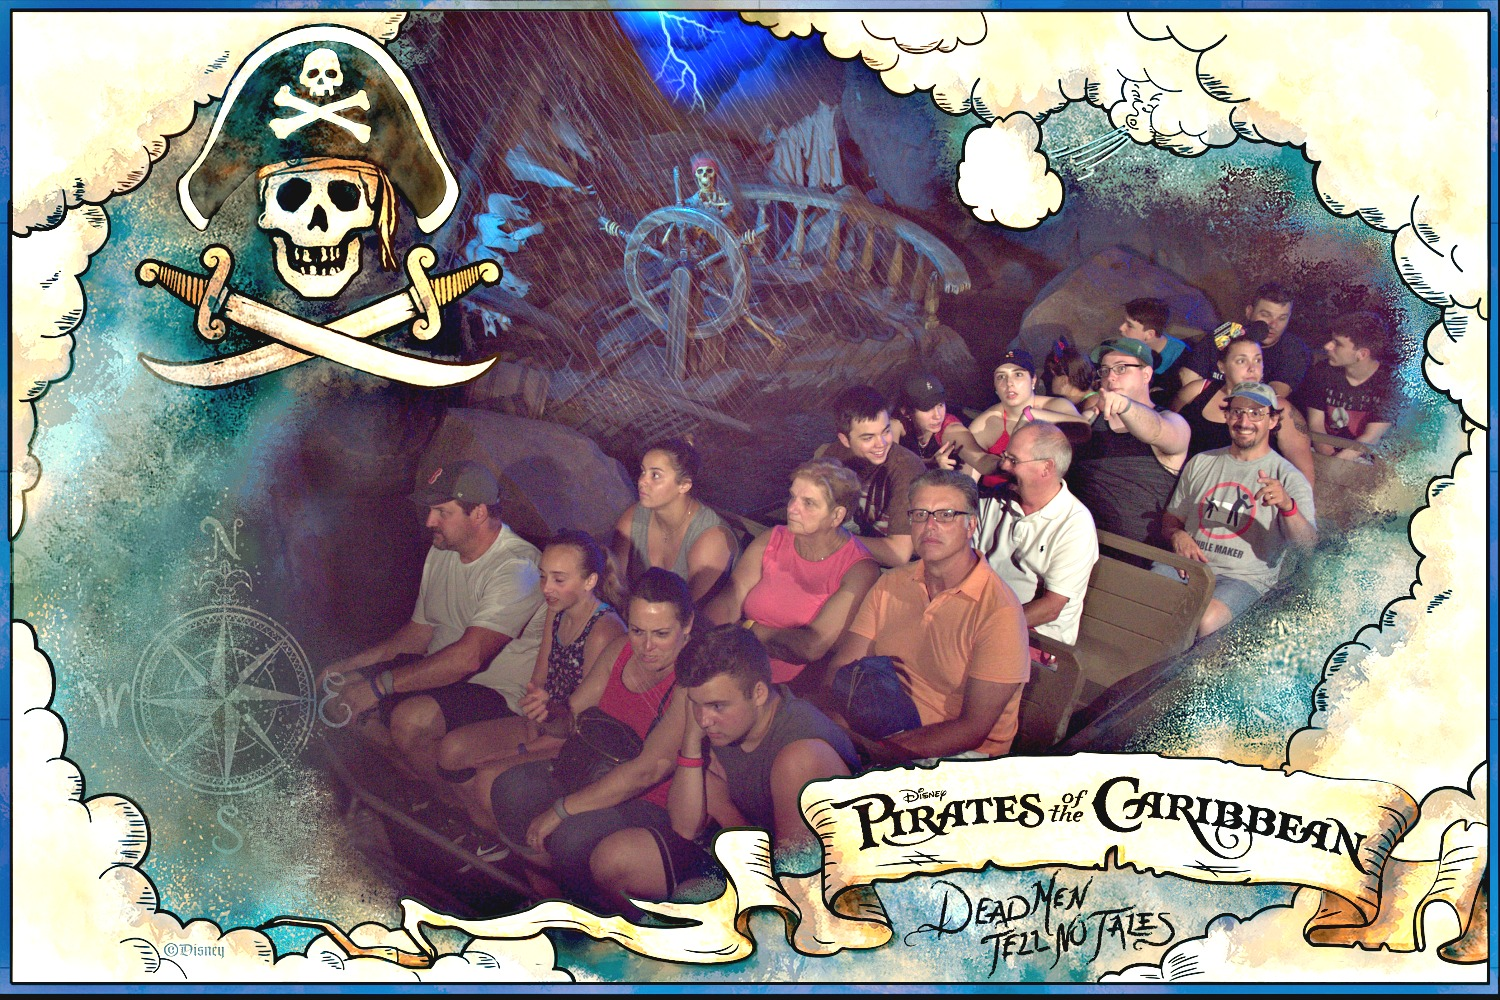 Disney World ride pictures on Pirates of the Caribbean